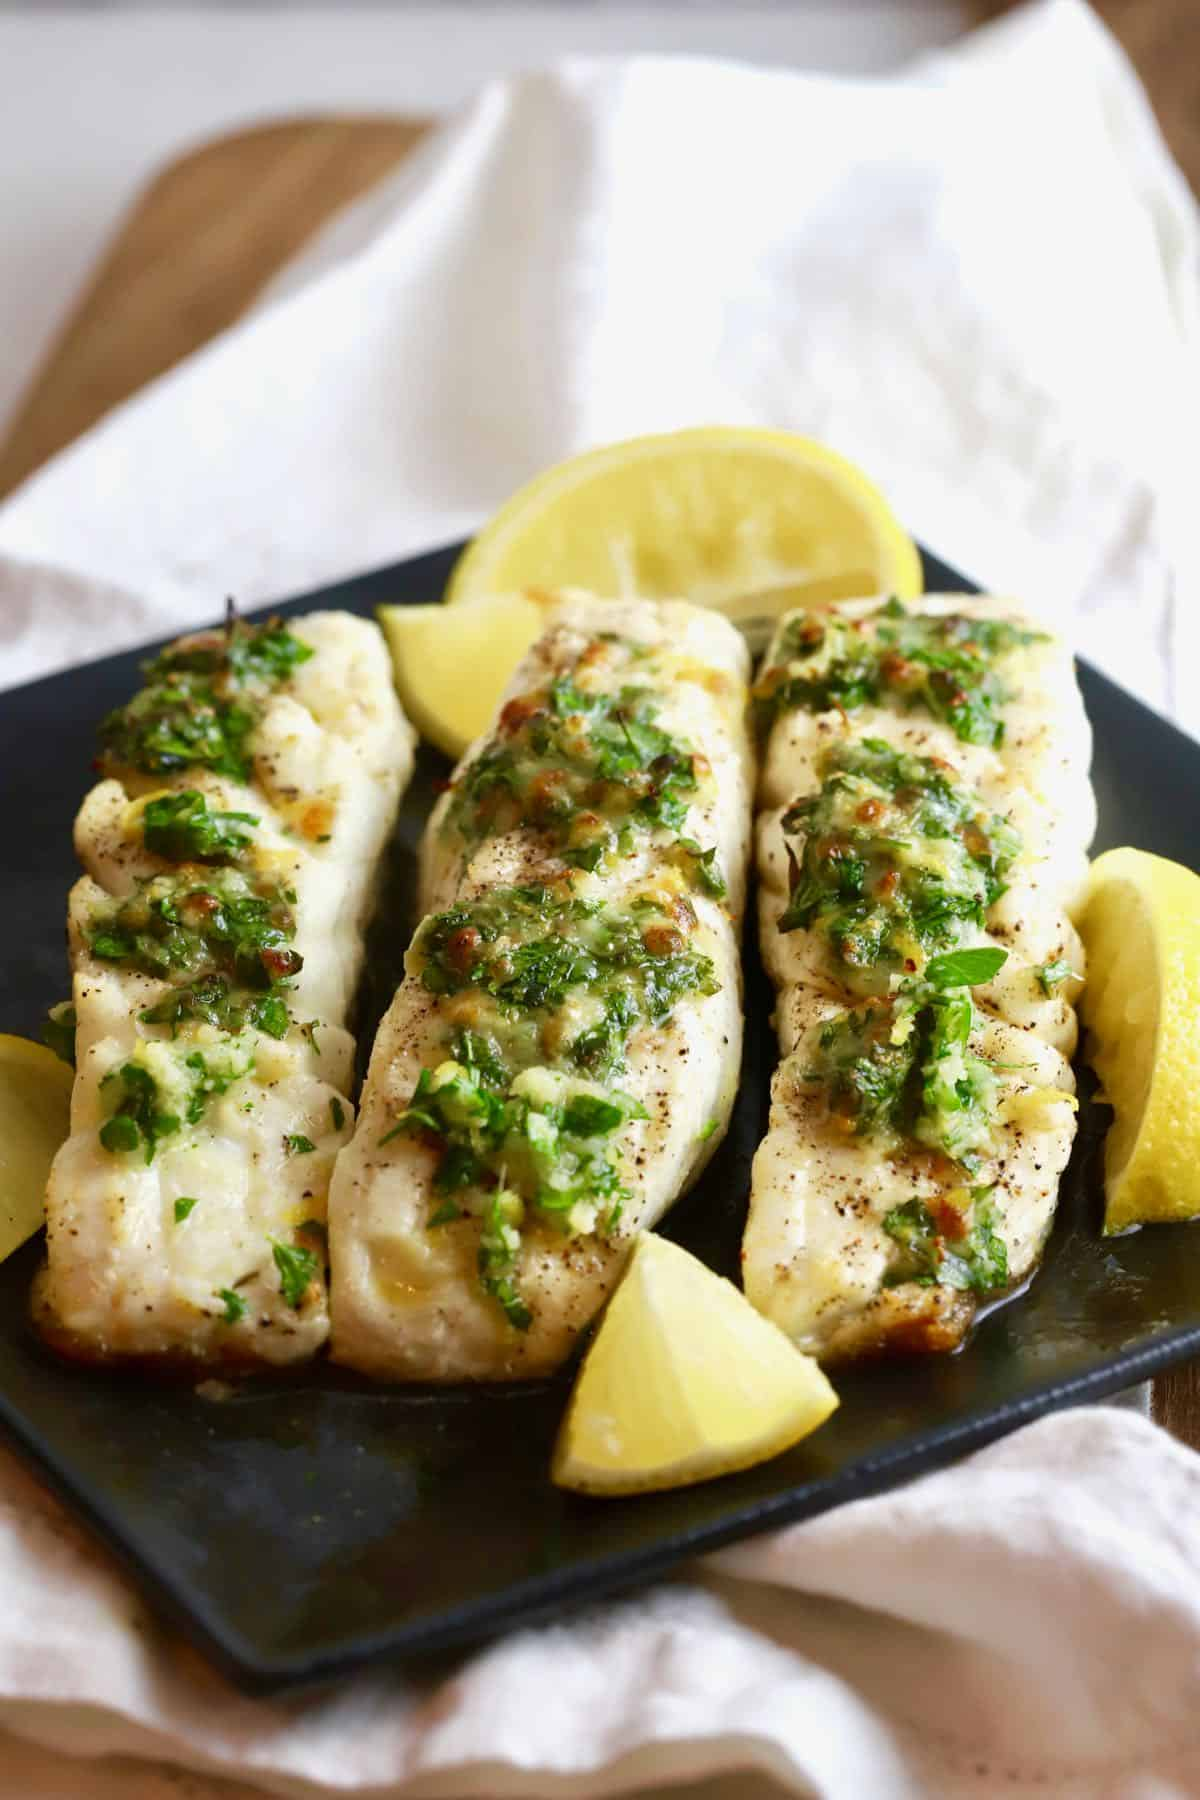 Fish fillets on a black plate garnished with lemon slices.